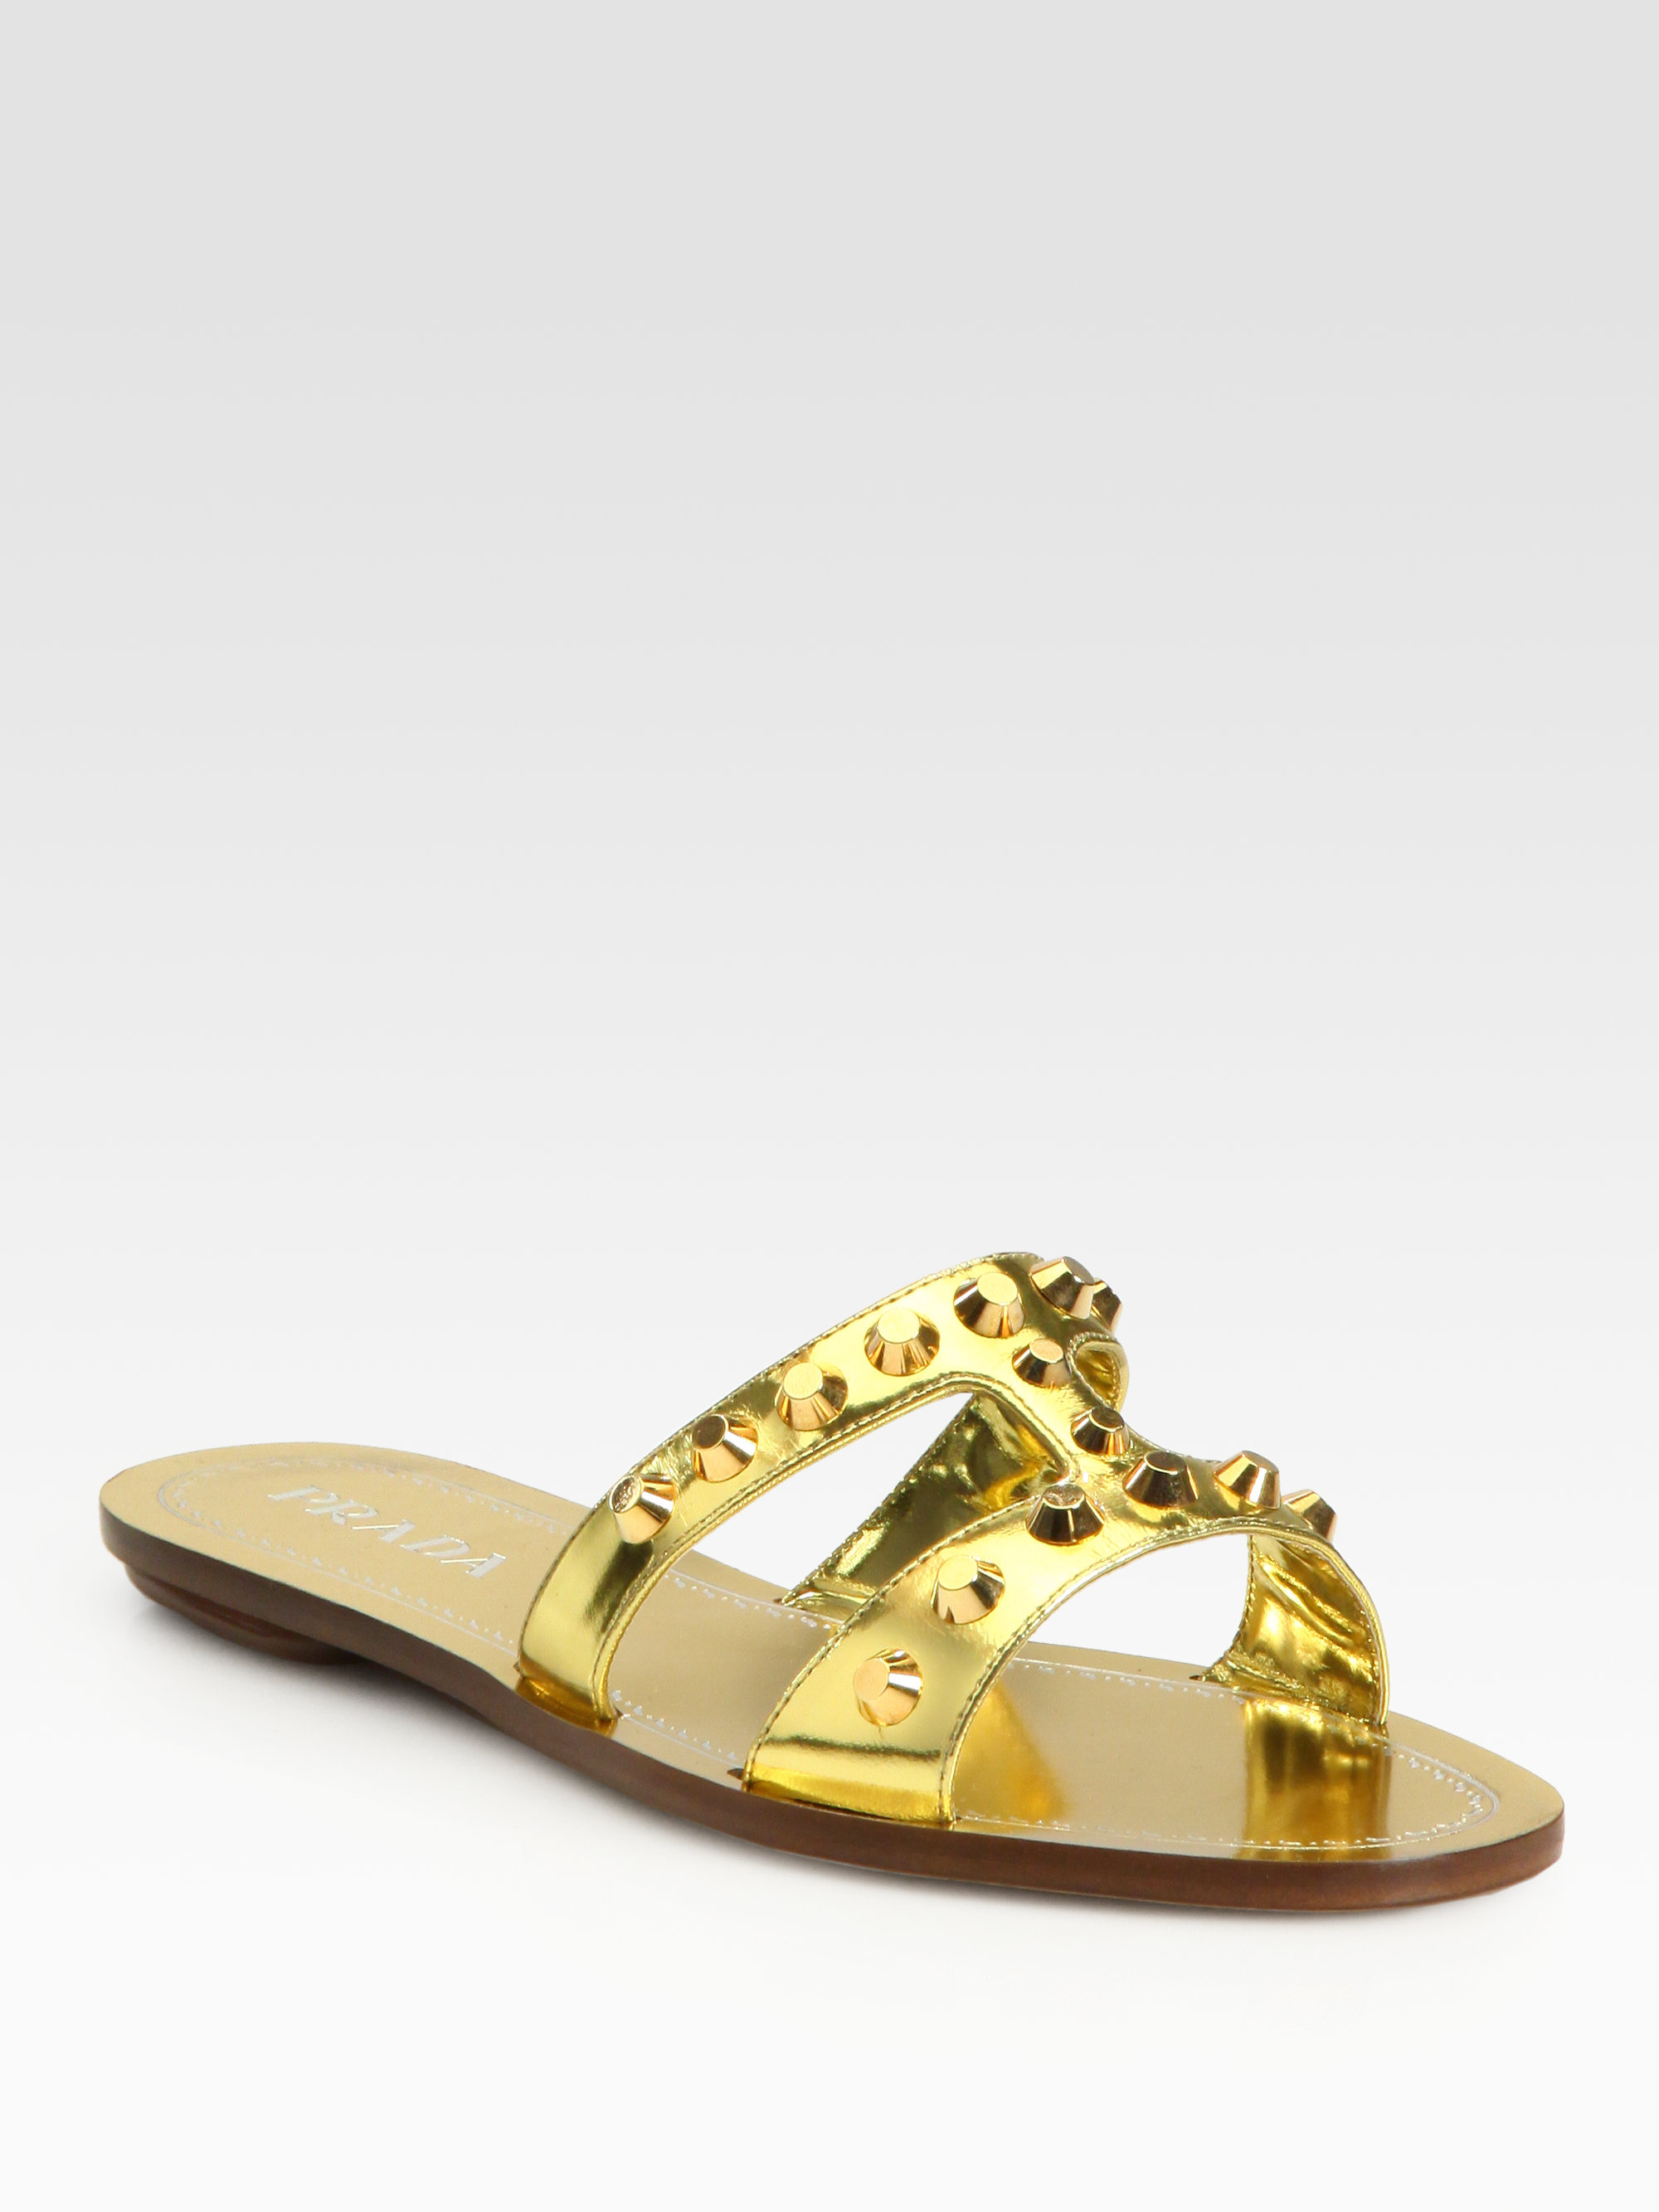 Prada Studded Leather Slide Sandals recommend sale online sale visa payment clearance 100% guaranteed 976WDZAu